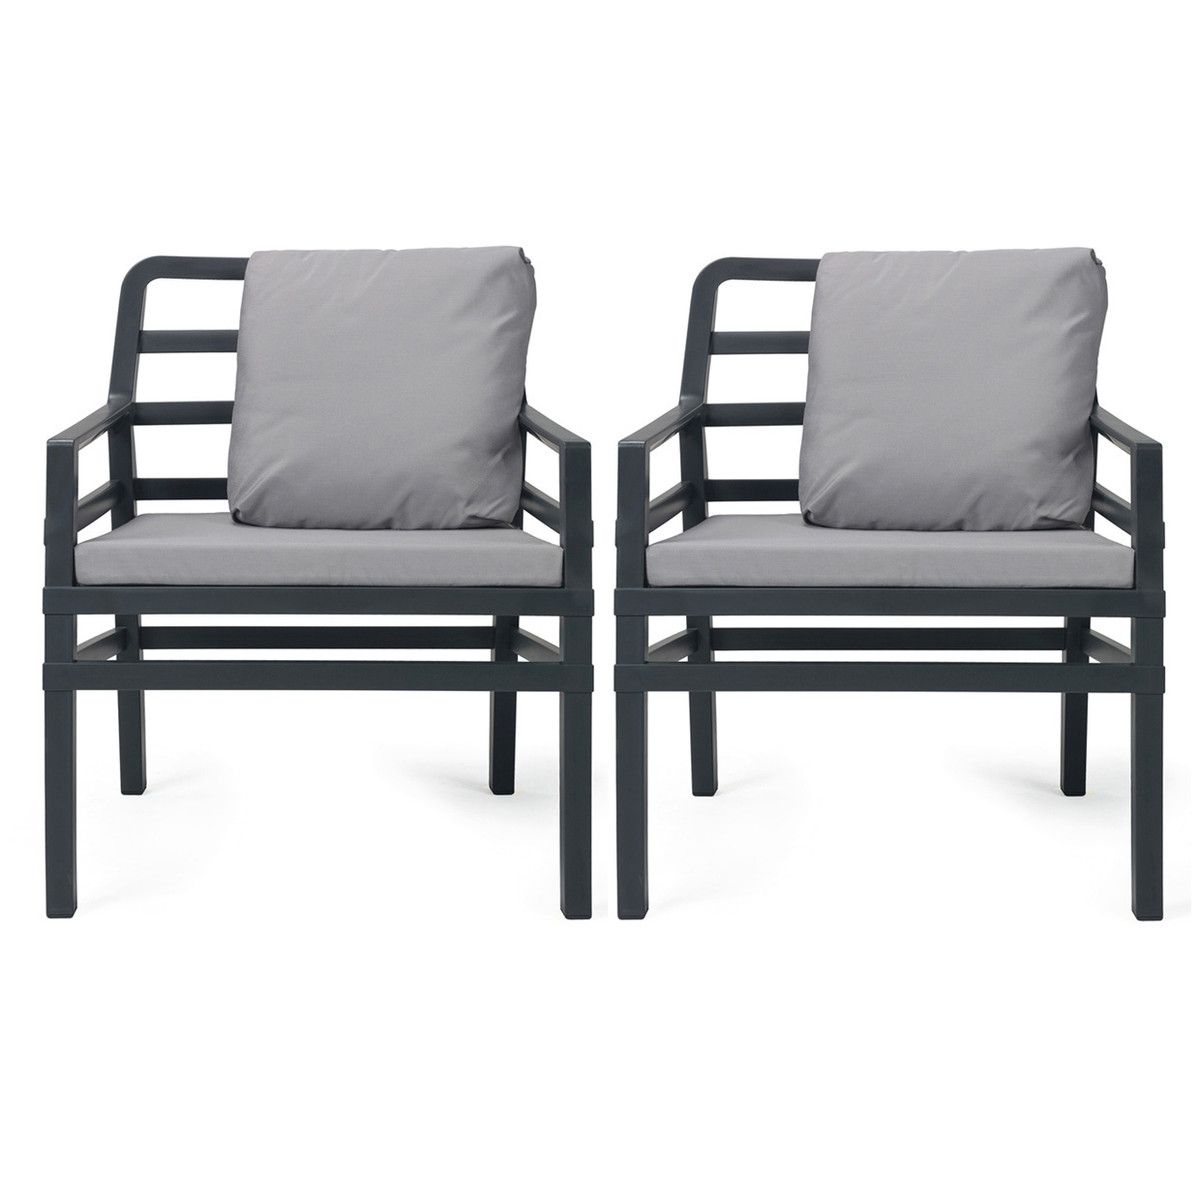 Aria Chair By Raffaello Galiotto Outdoor Chairs Home